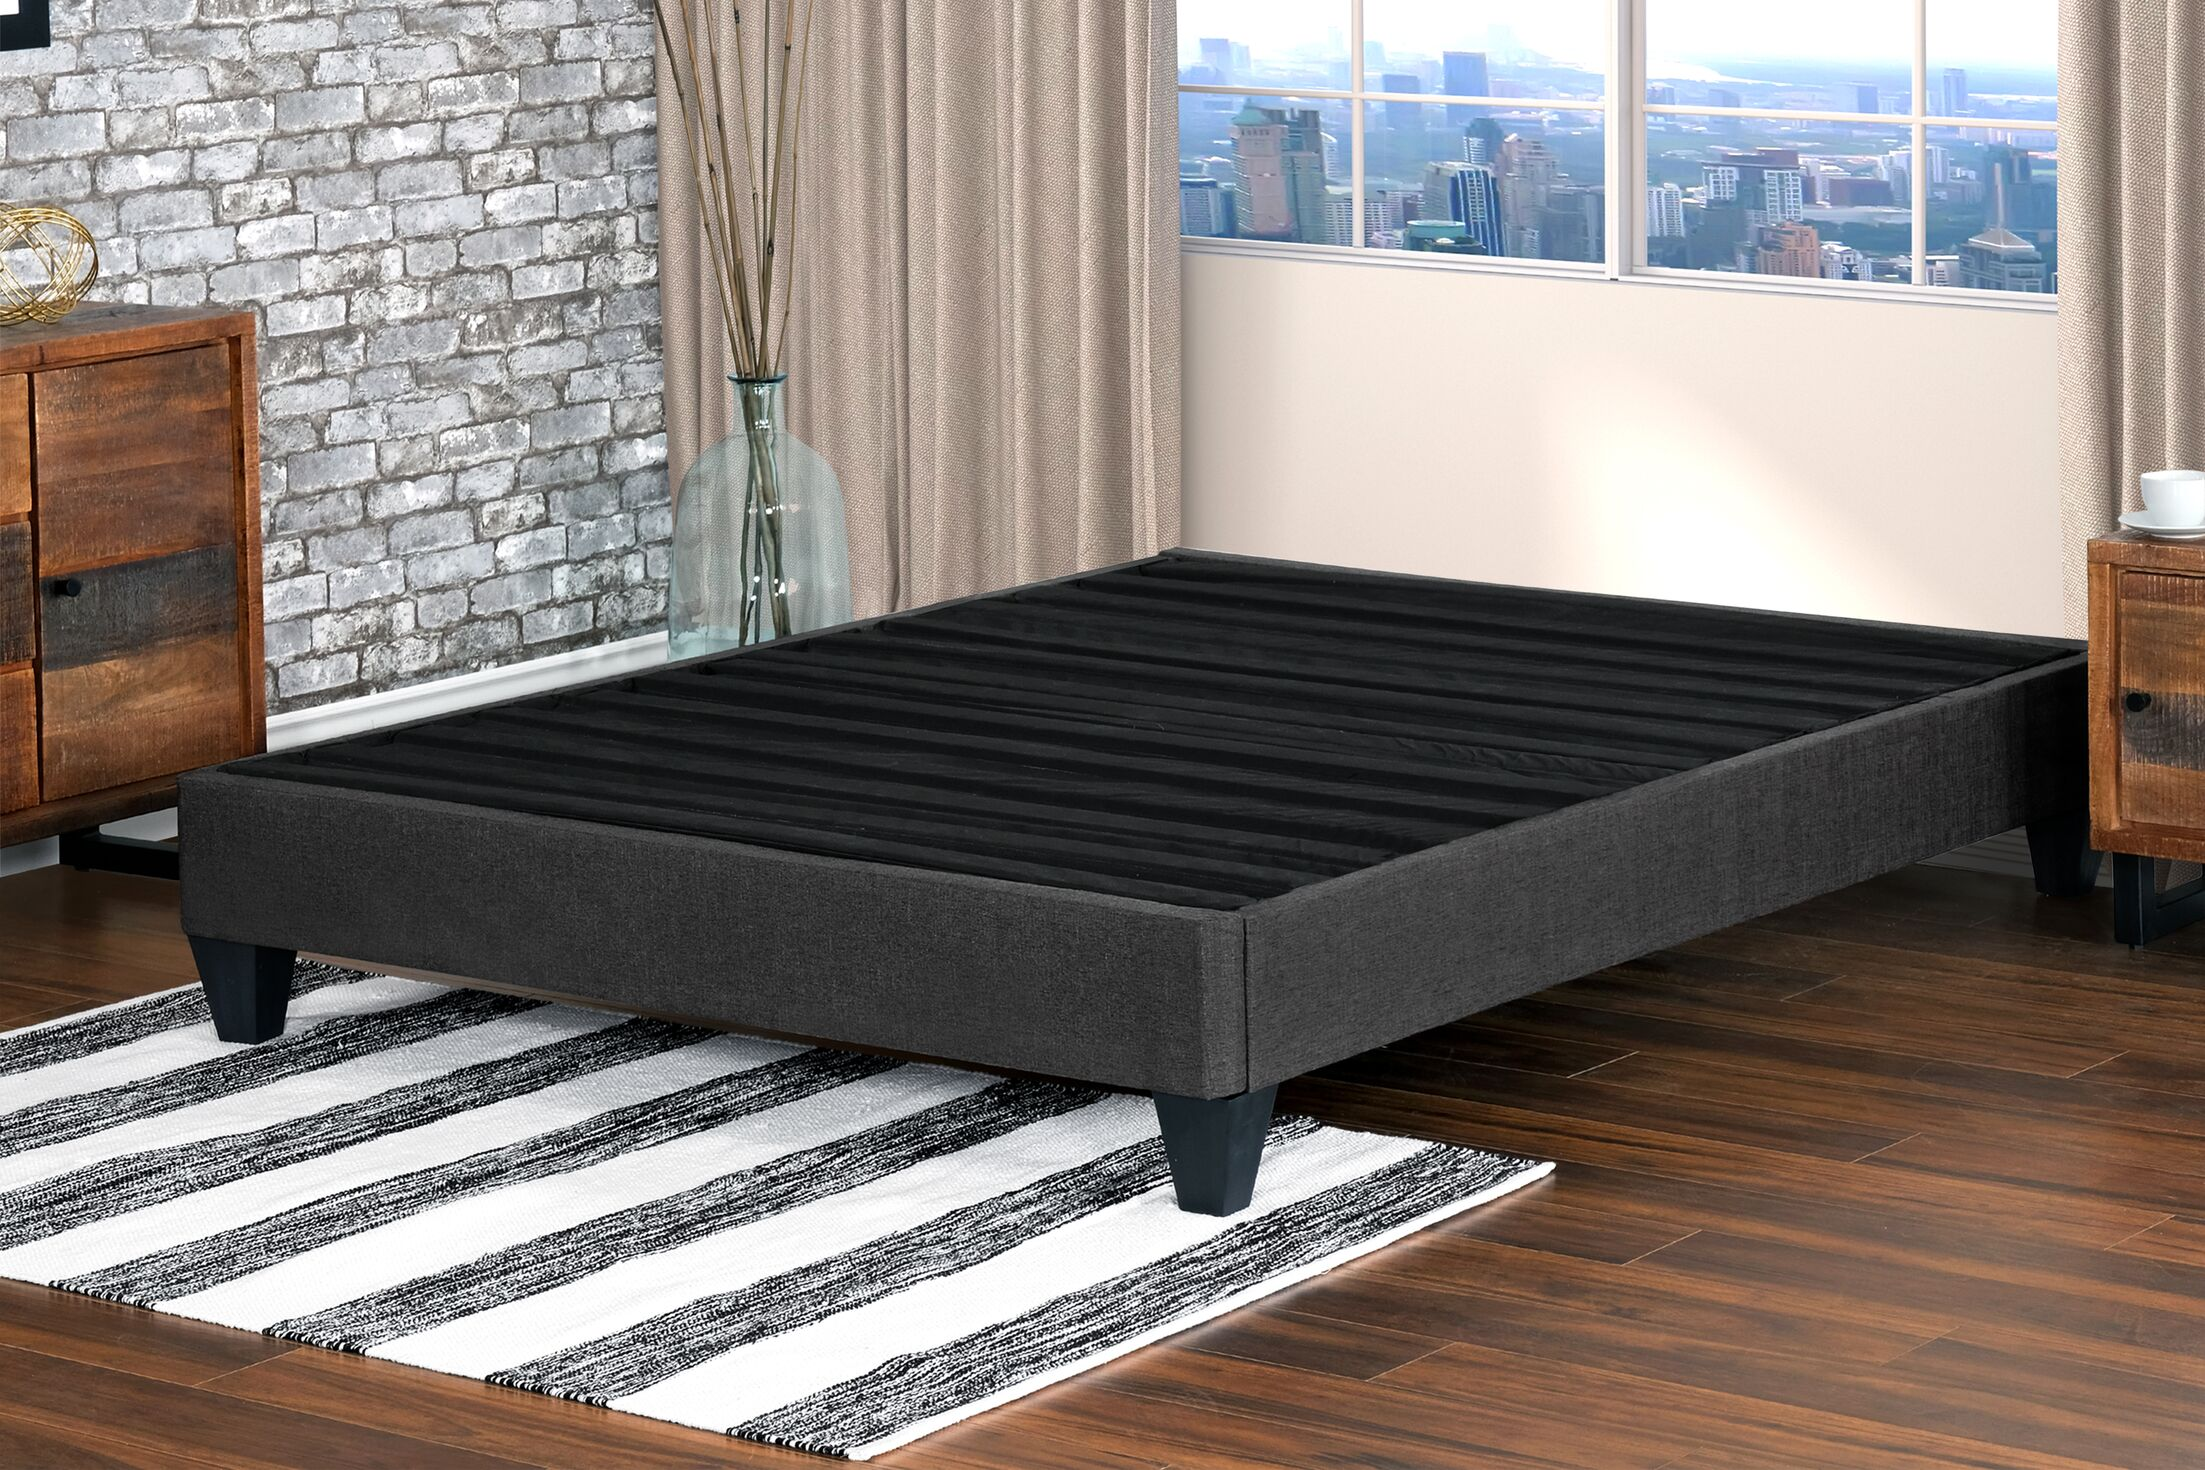 Gainesville Bed Frame Size: Full